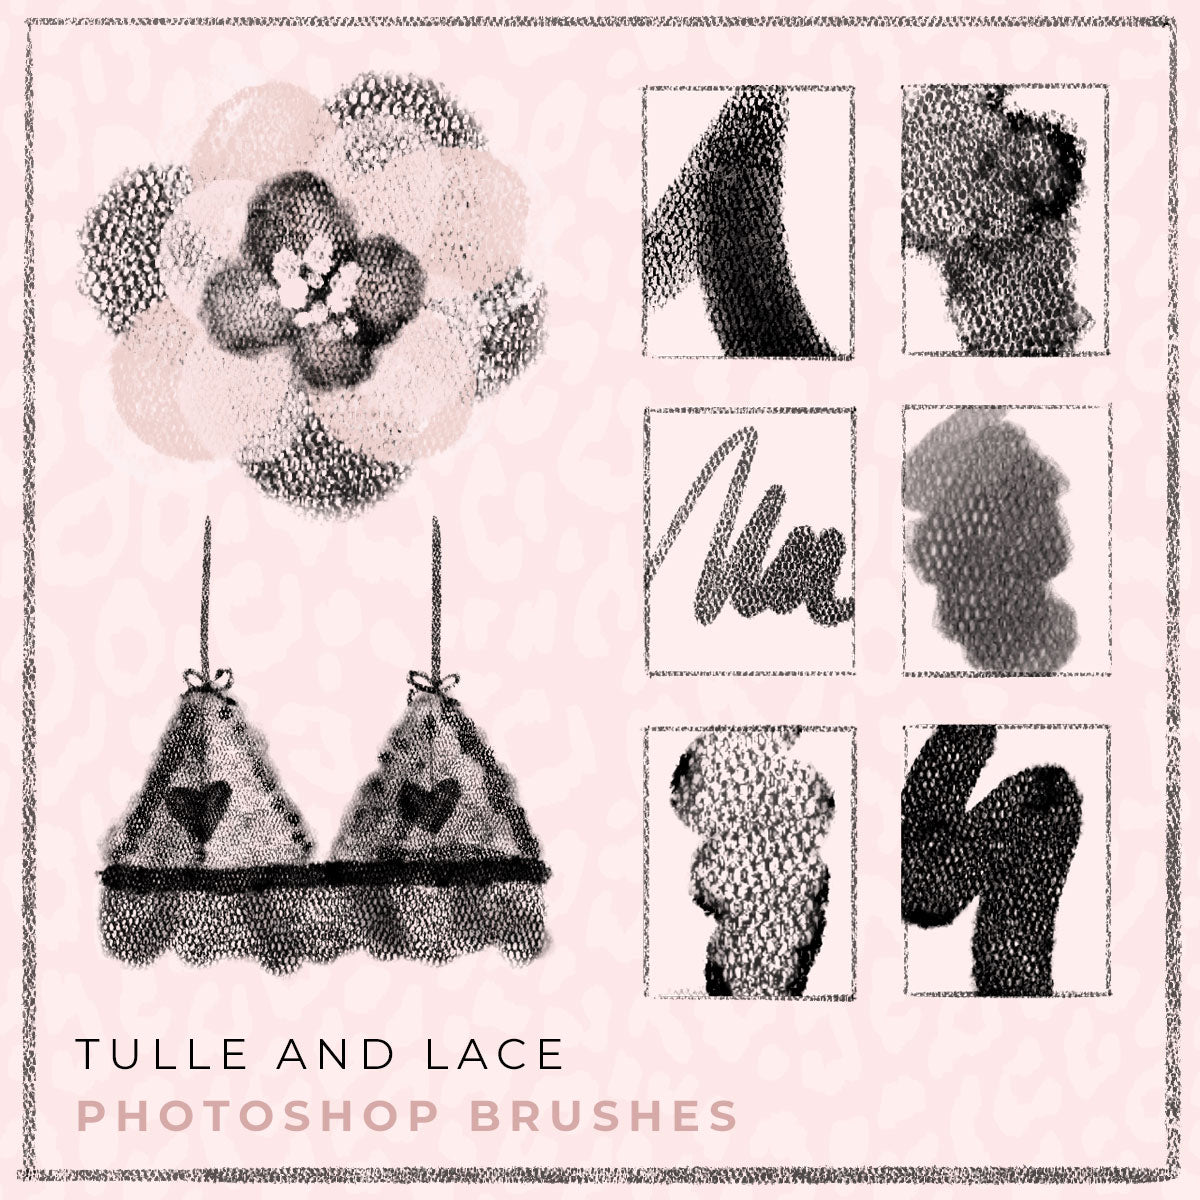 New Photoshop Brushes: Tulle and Lace Brush Collection